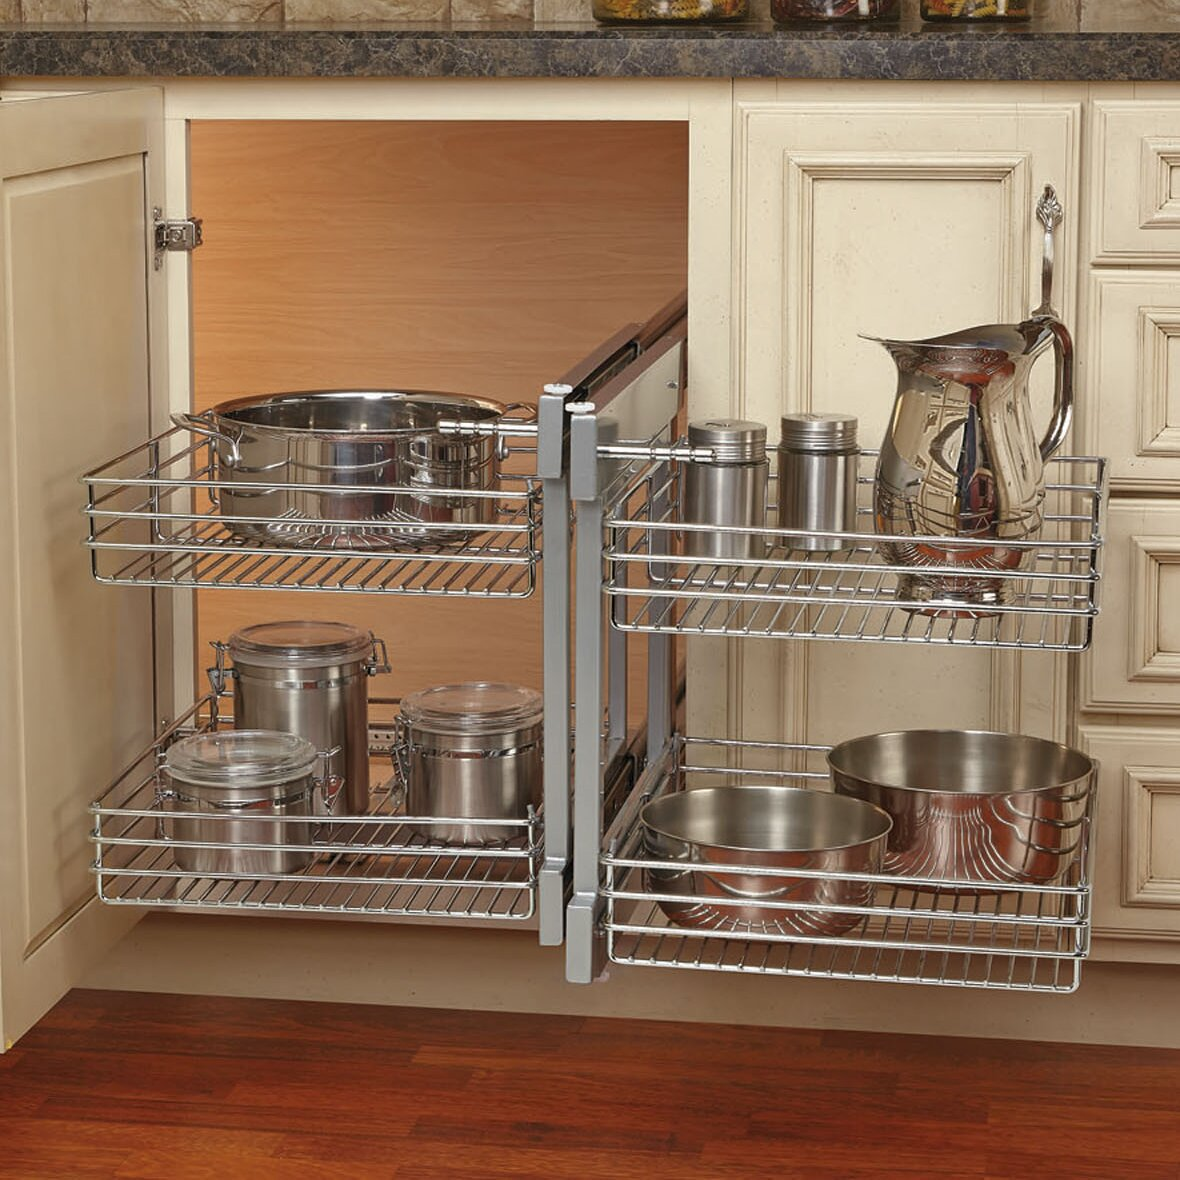 Blind Corner Optimizer Kitchen Cabinet